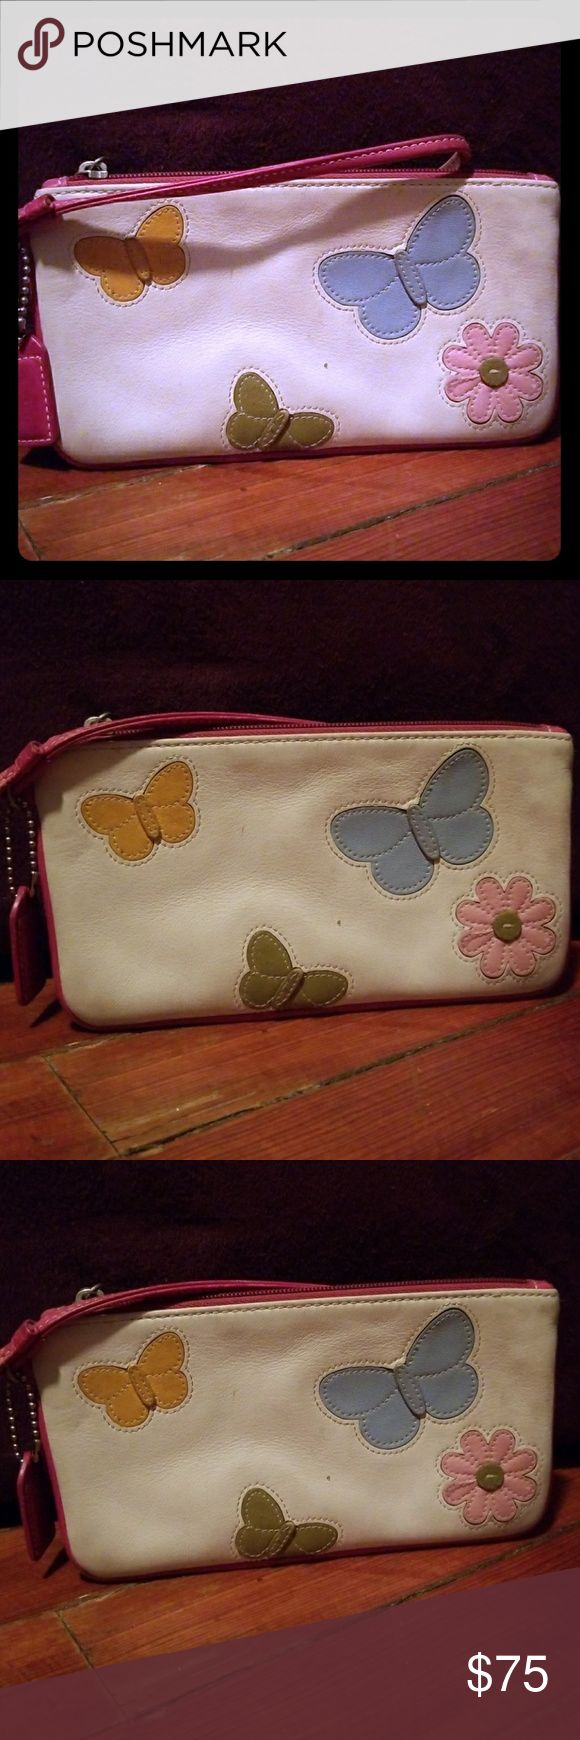 Butterfly Coach wristlet White leather Coach wristlet with butterflies, each butterfly a different color. Colors blue, green, yellow and pink. Coach Bags Clutches & Wristlets